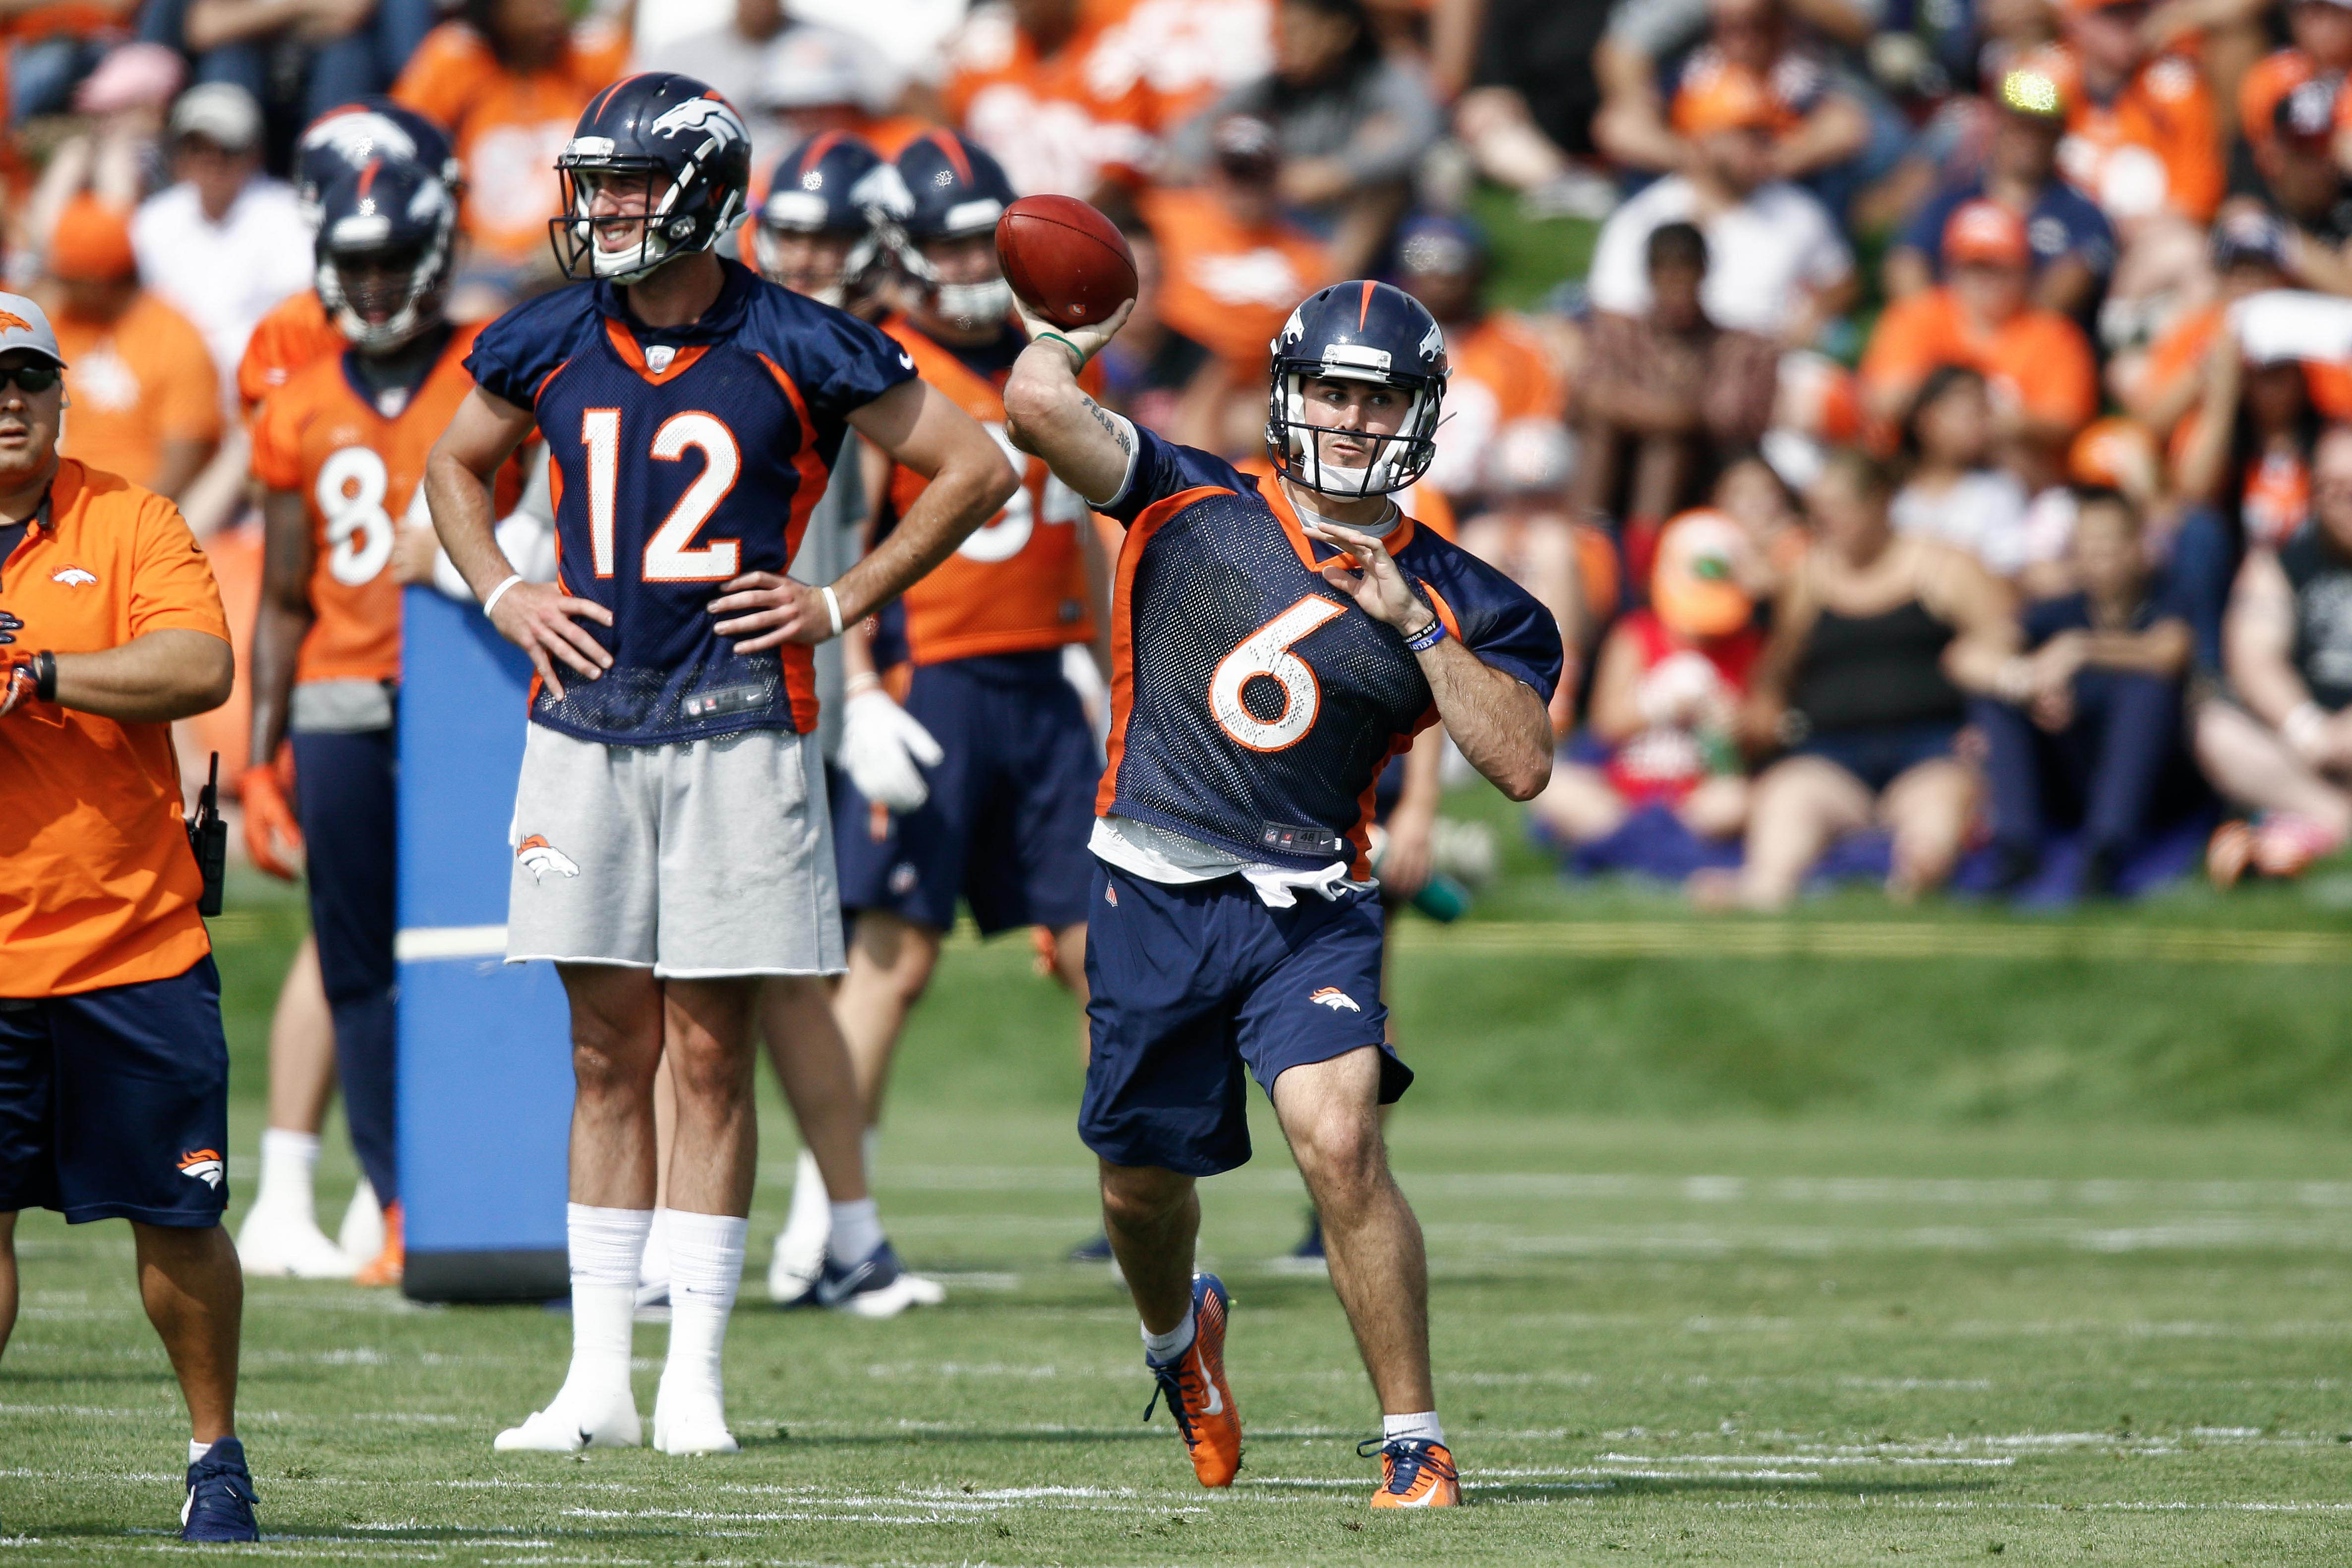 Chad Kelly promoted to Broncos backup QB amid Paxton Lynch's struggles